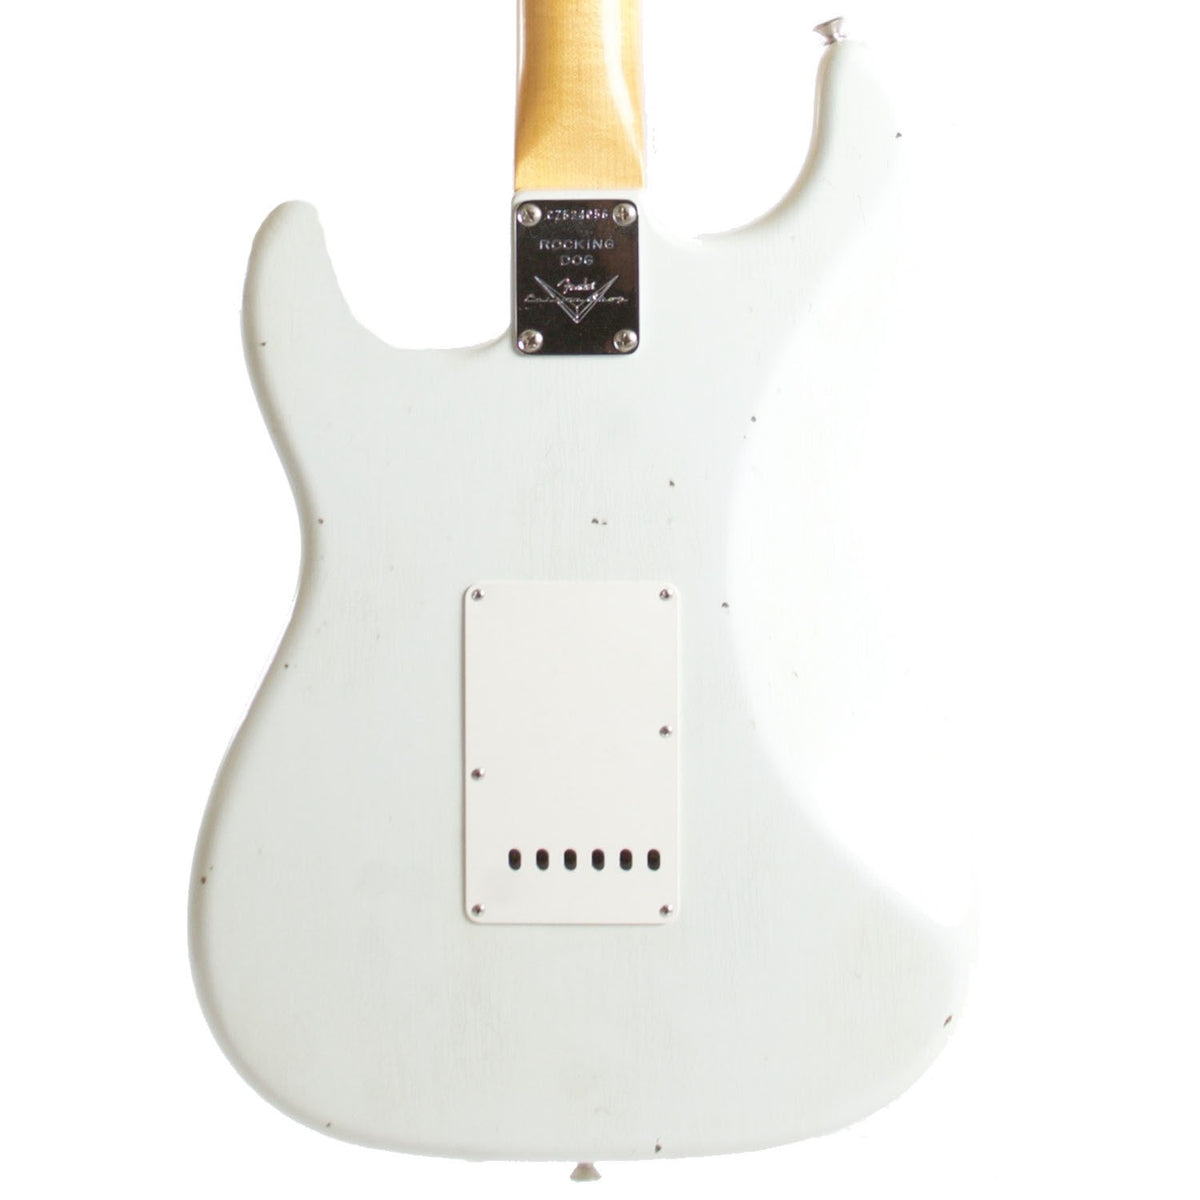 2015 Fender Custom Shop Rocking Dog '62 Stratocaster Olympic White - Garrett Park Guitars  - 5